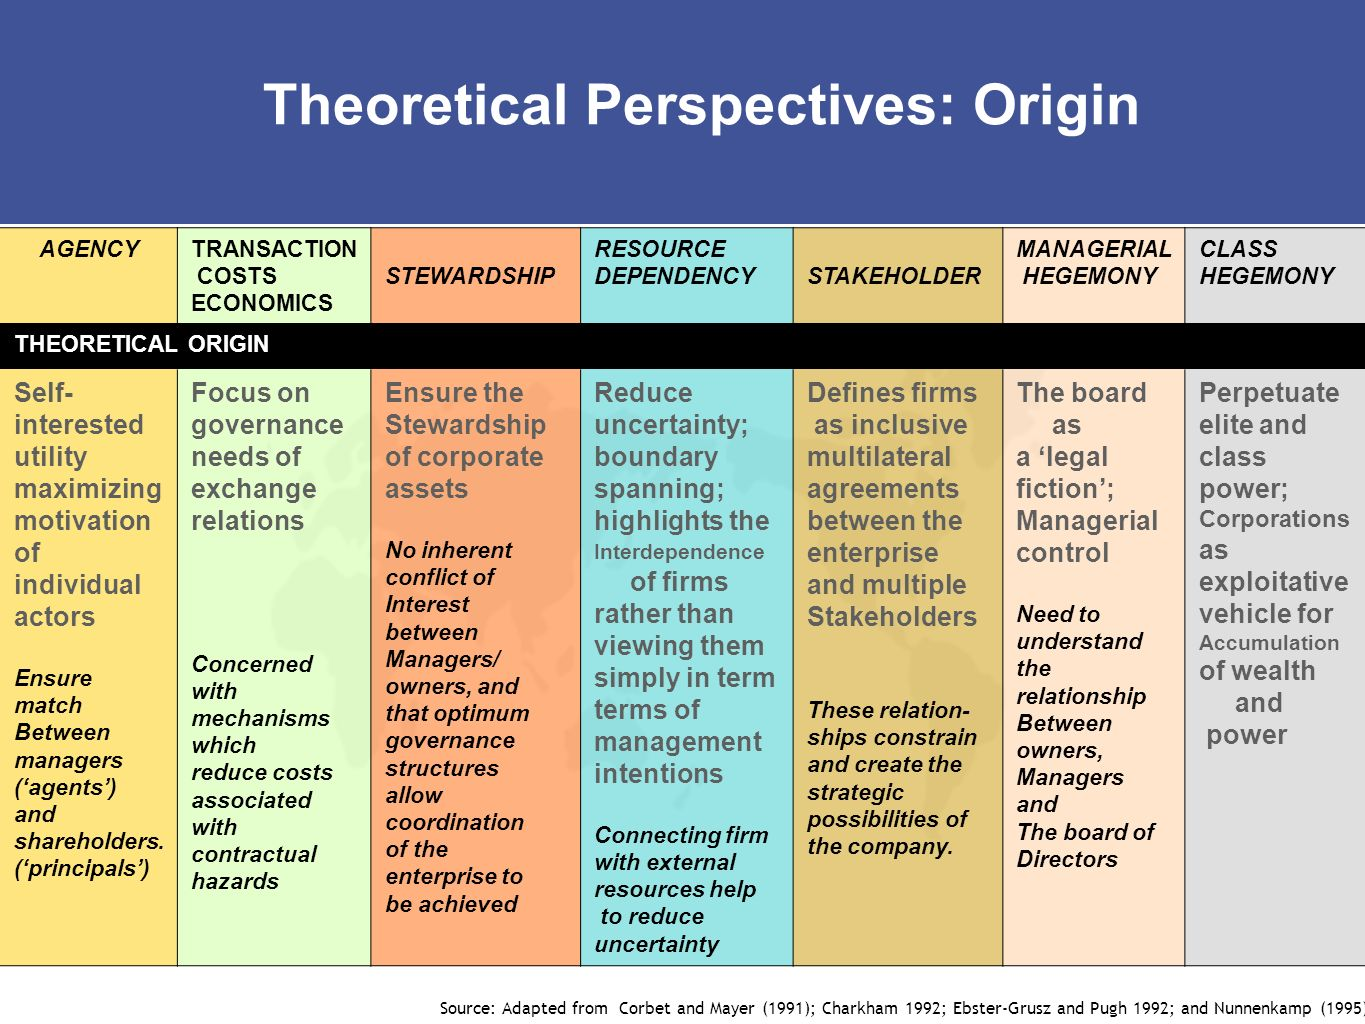 Theoretical Perspectives: Origin